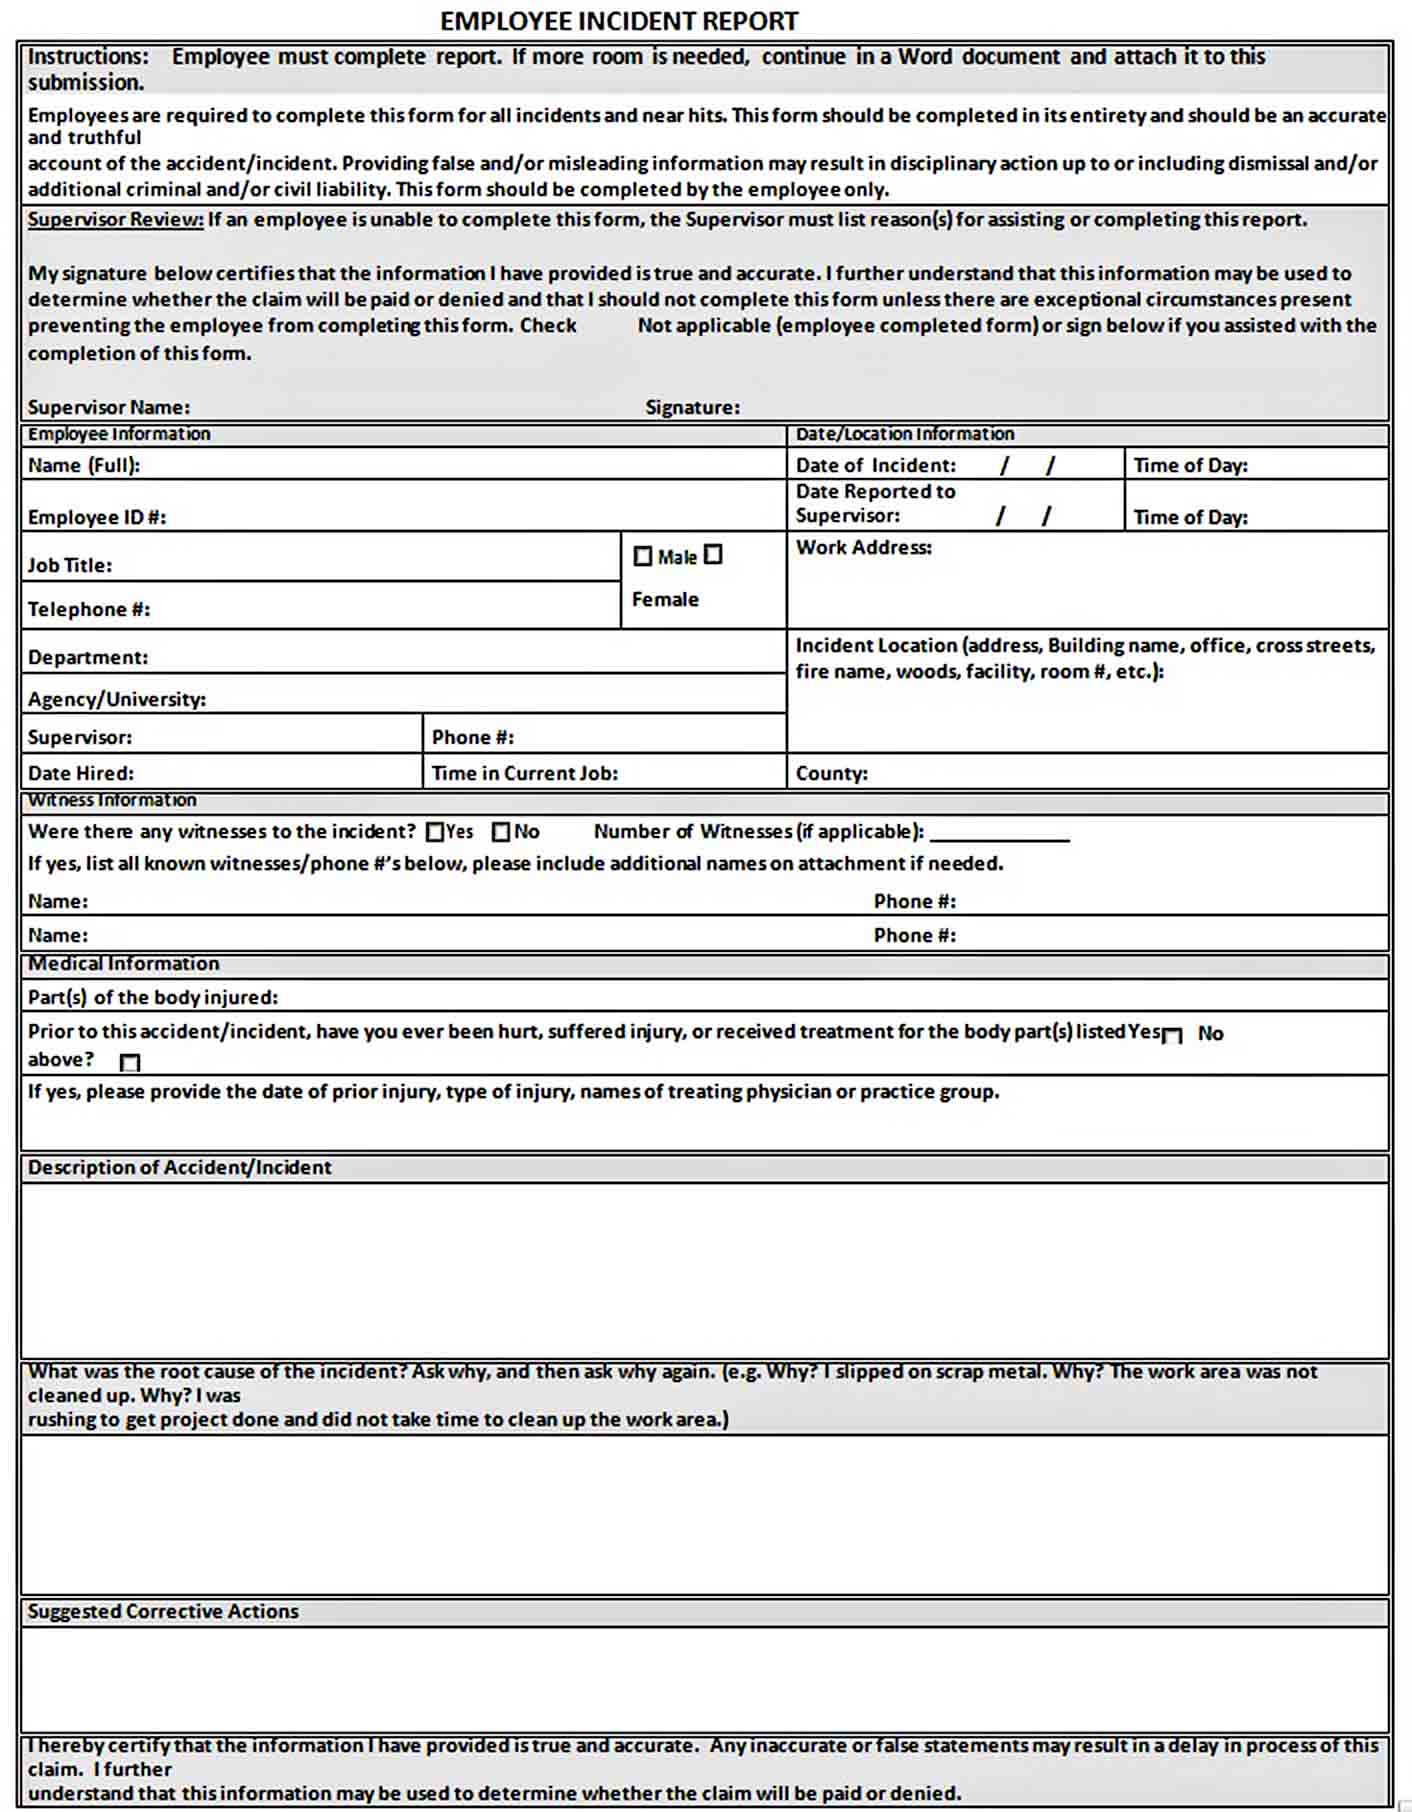 Templates Employee Incident Report in